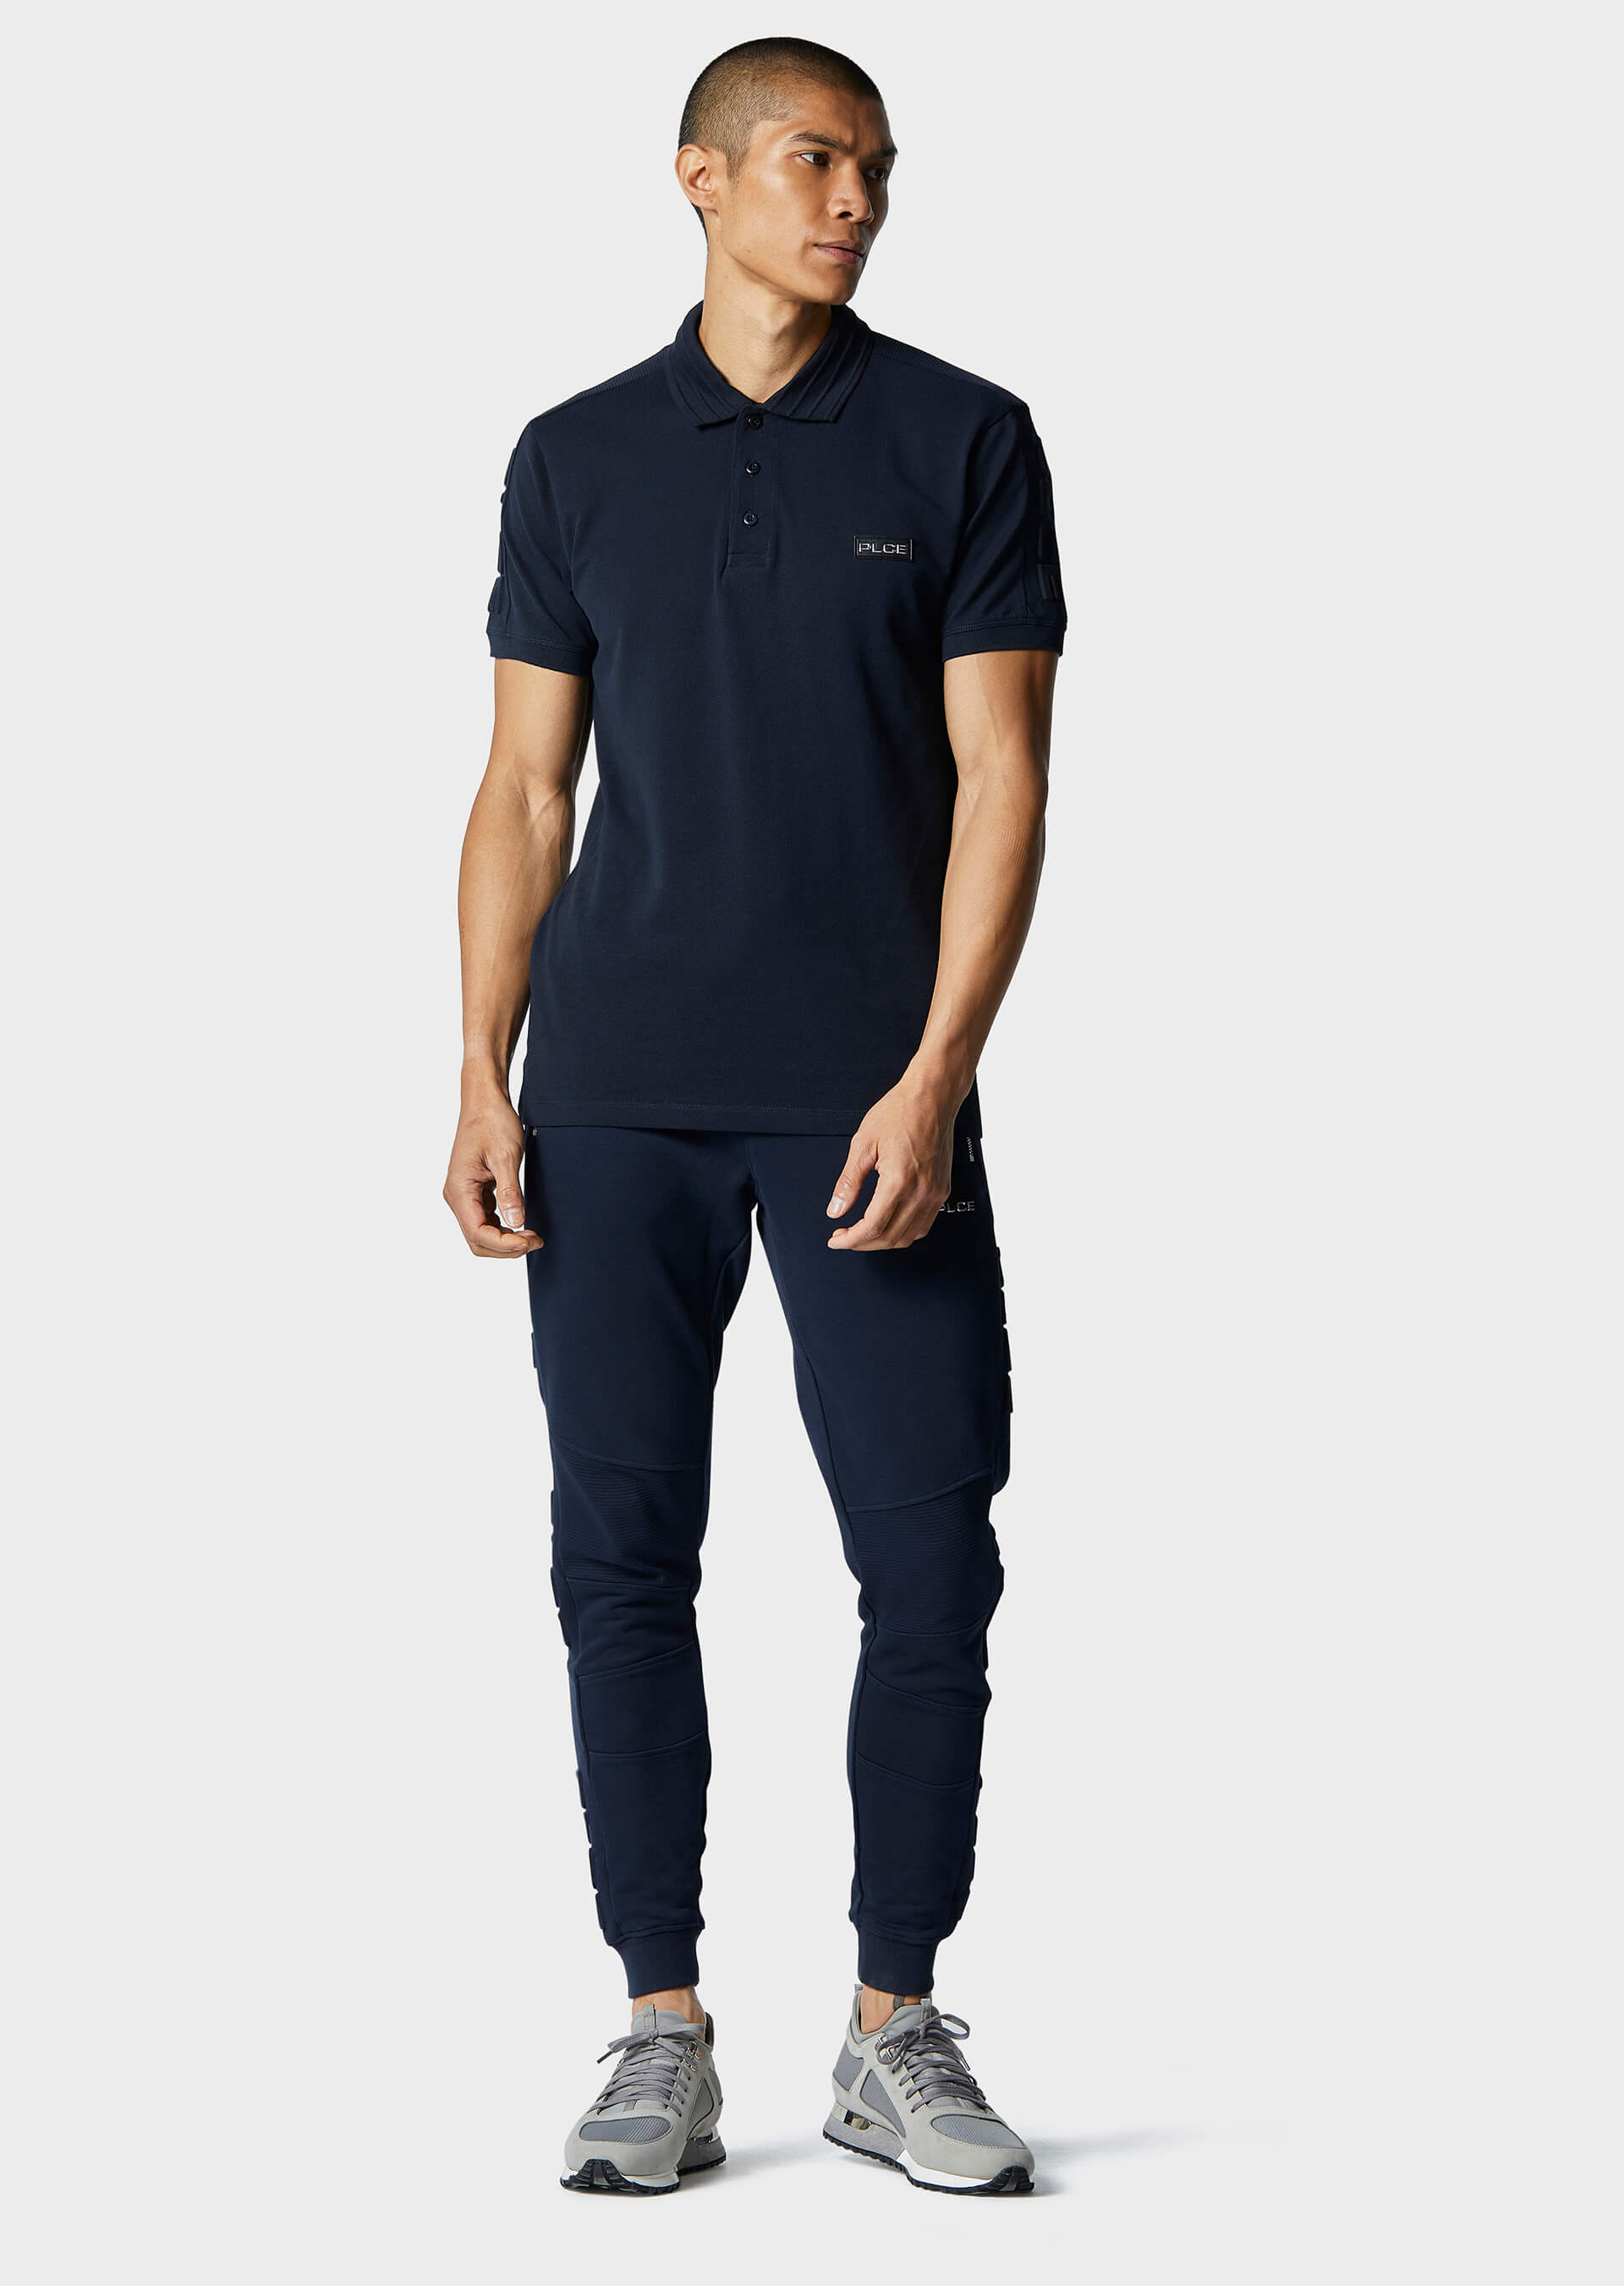 Arche Navy Polo Shirt second_image